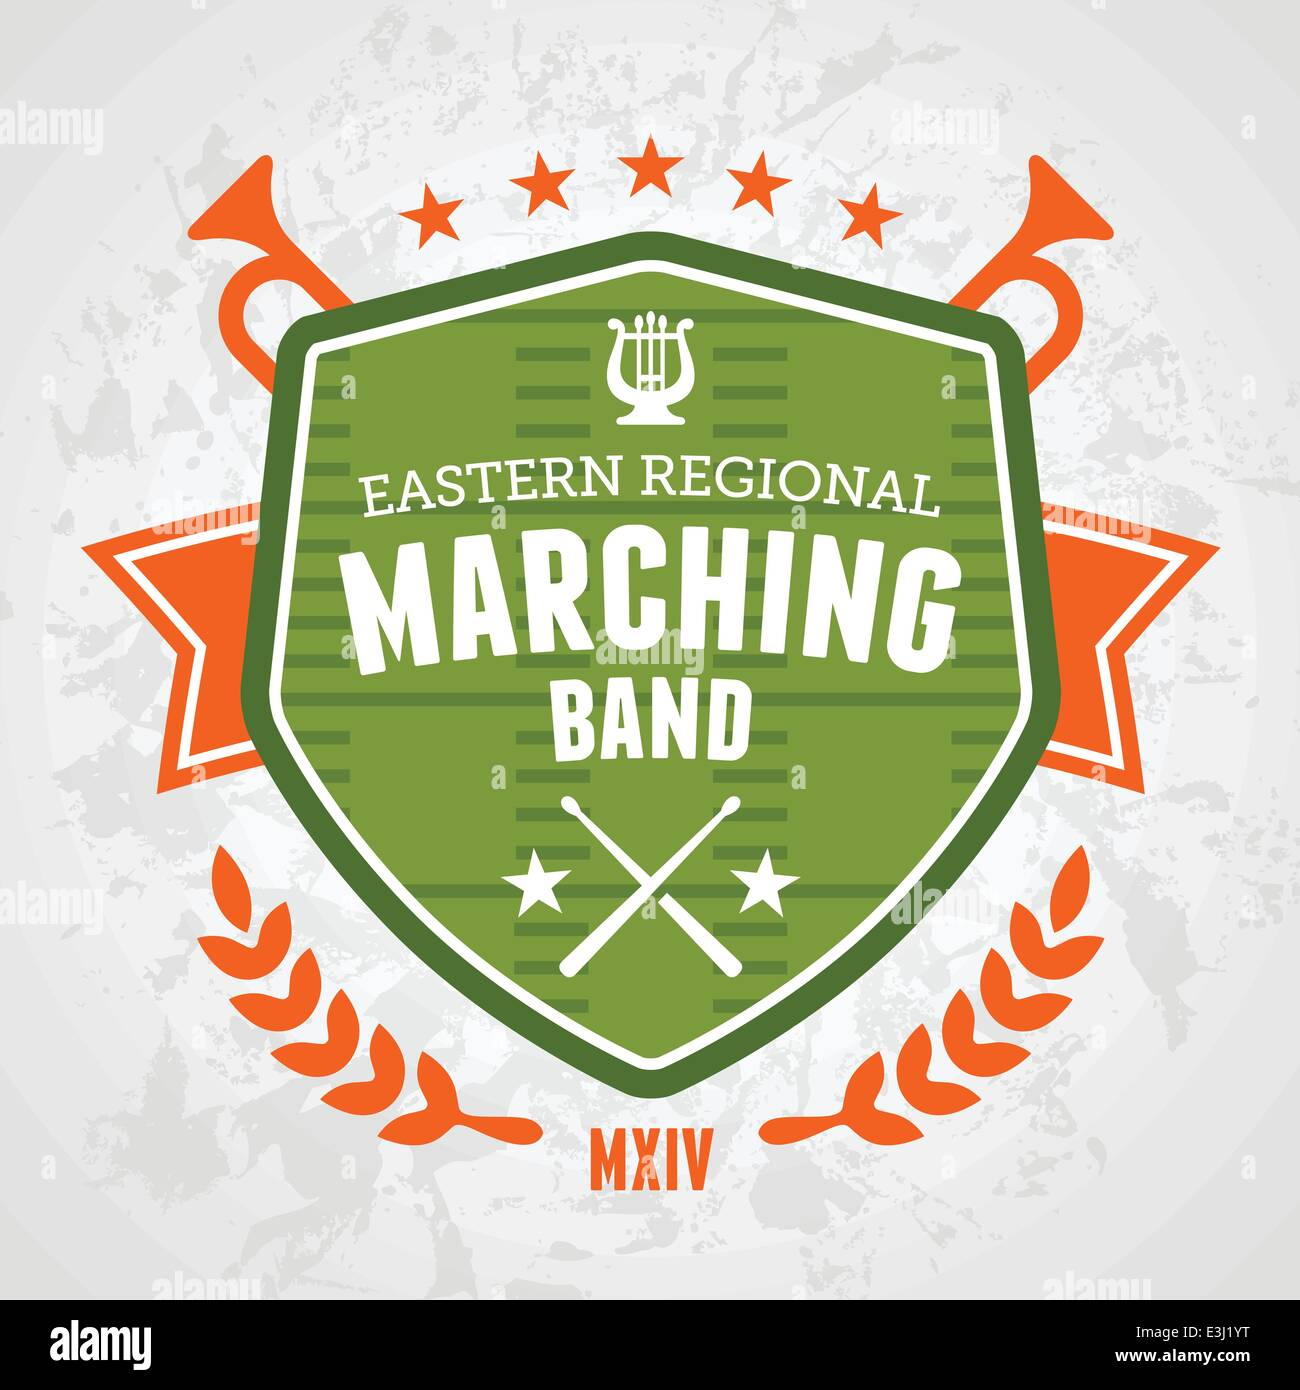 Marching Band Drum Corp Emblem Badge Design Stock Vector Art